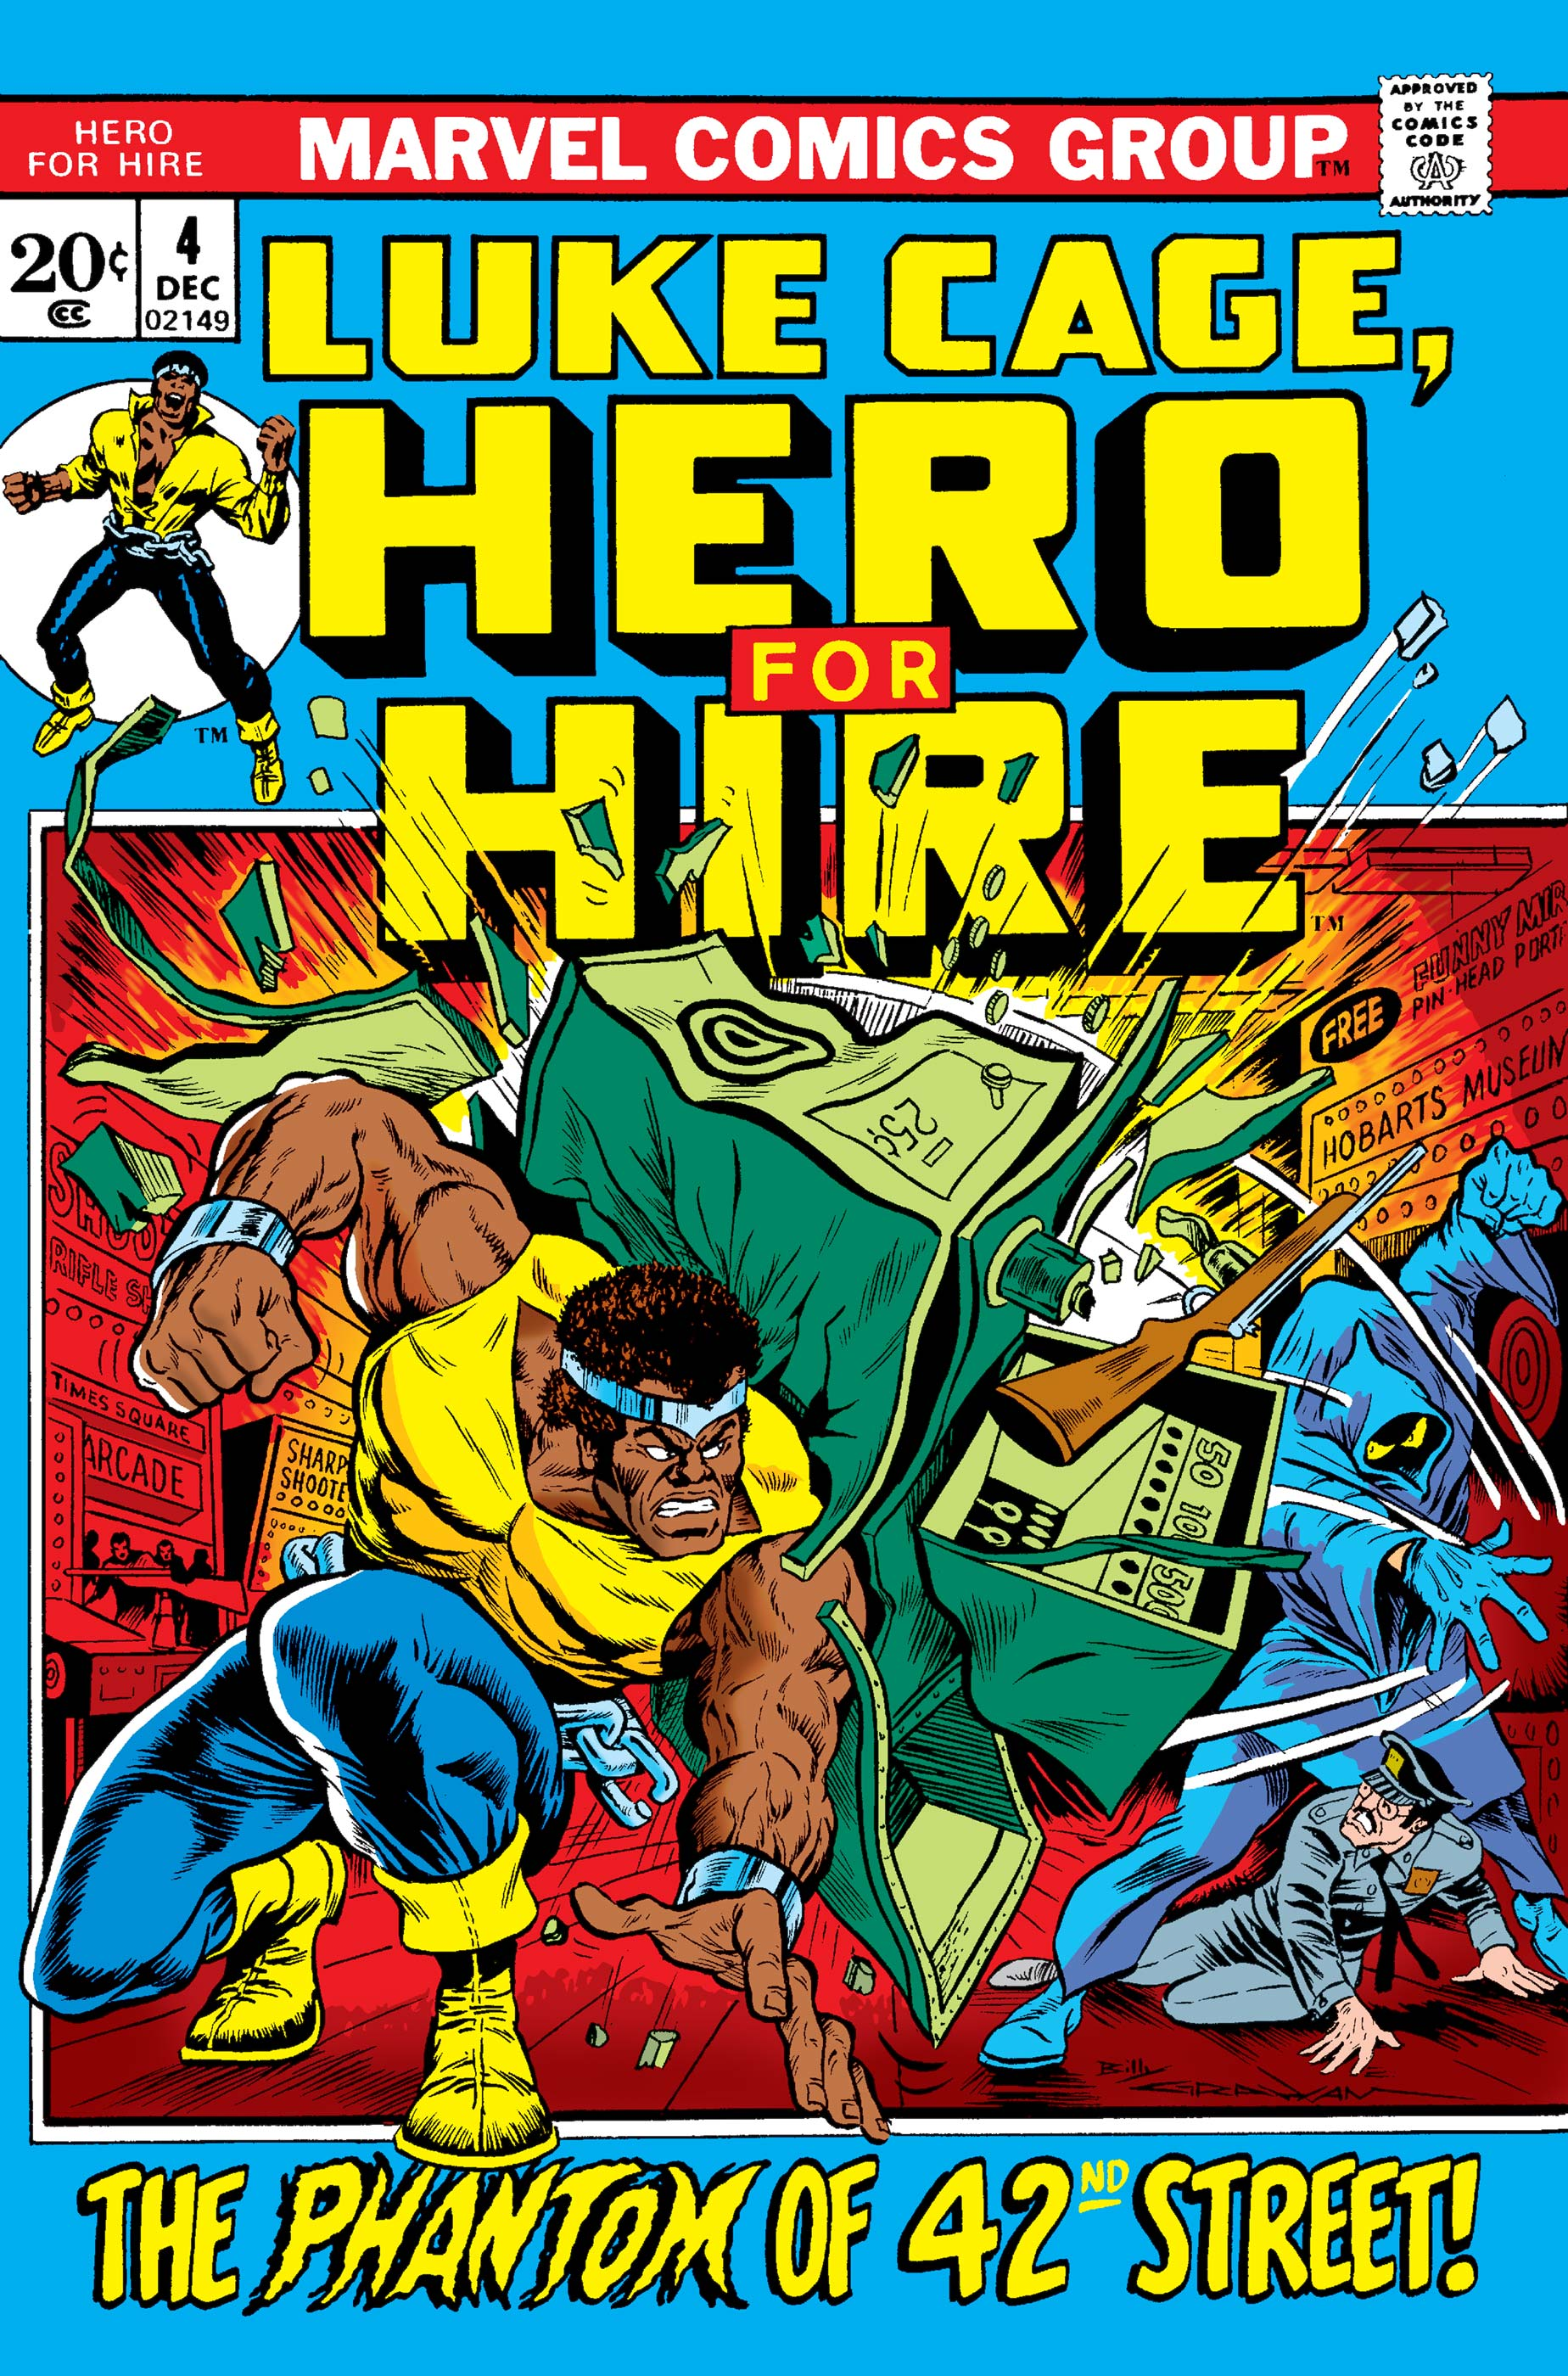 Luke Cage, Hero for Hire (1972) #4